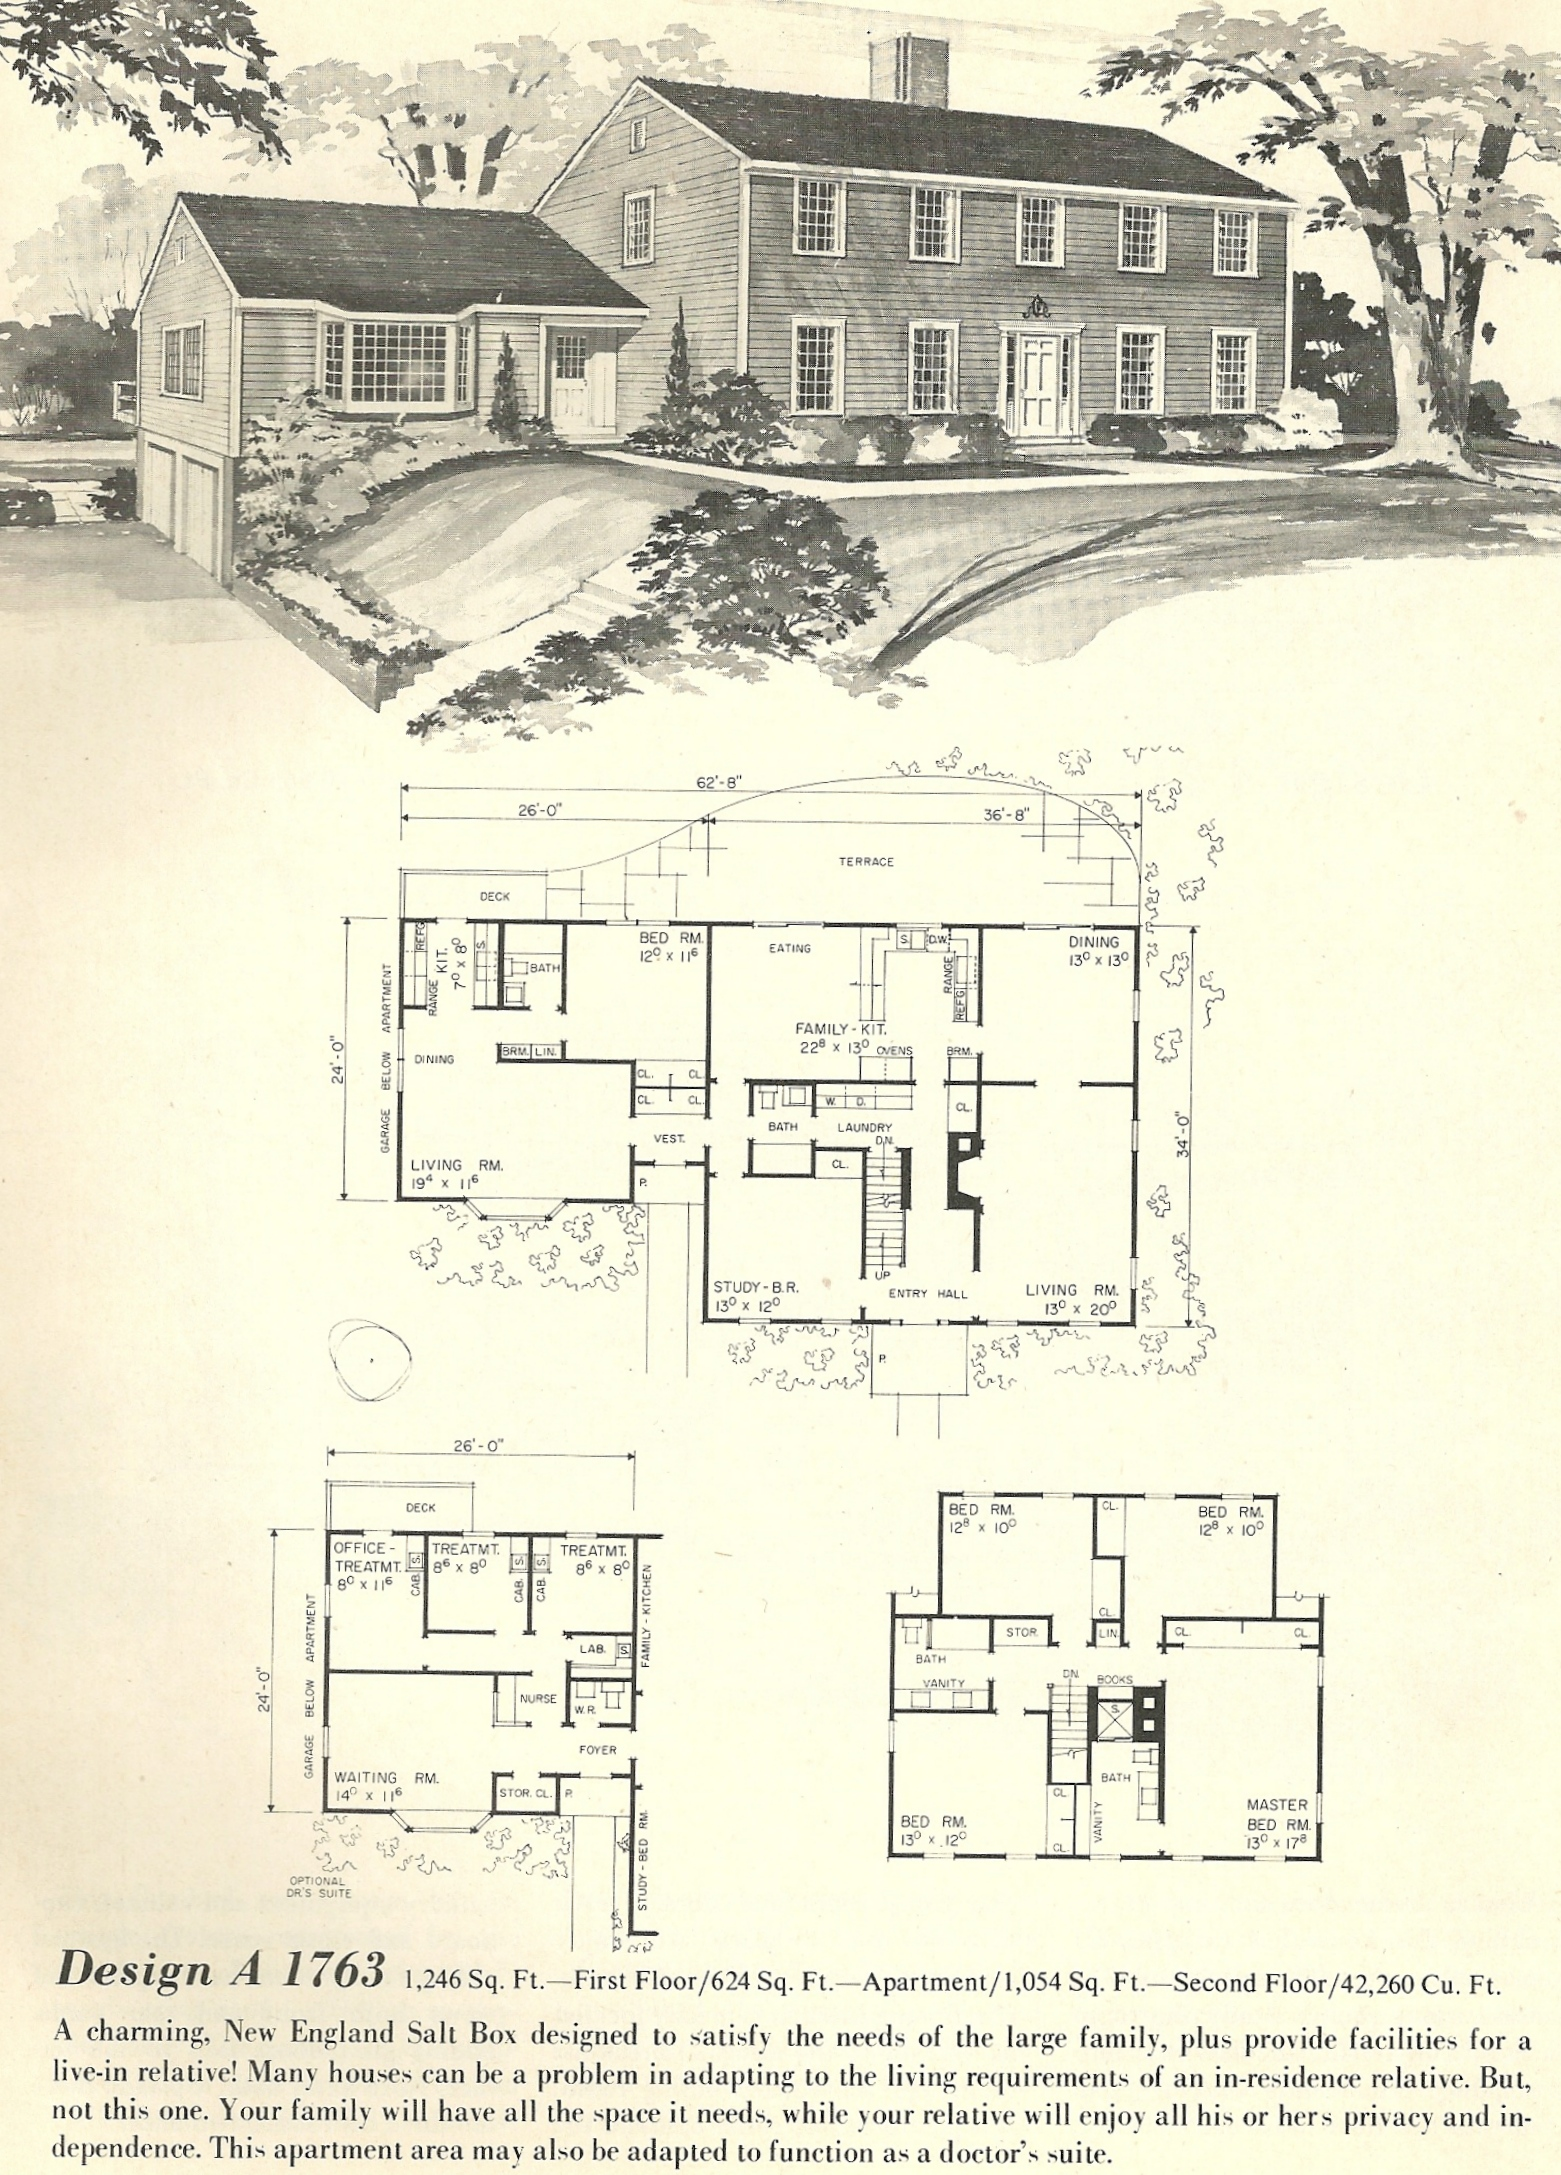 Vintage house plans salt box 1763 antique alter ego for 1970s house floor plans